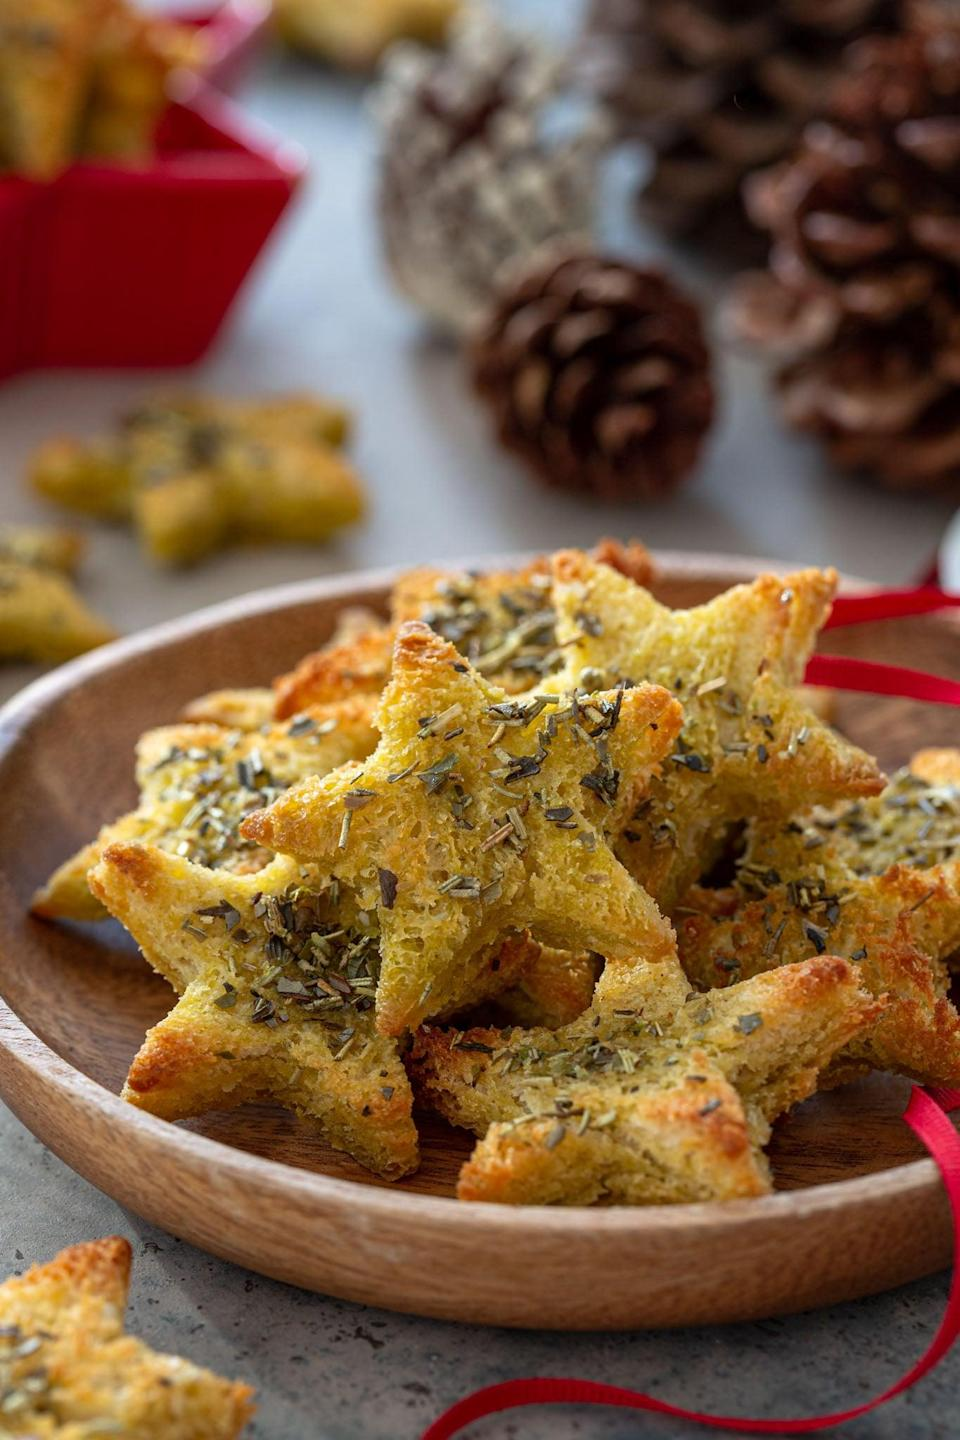 """<p>Whether you want to upgrade your cheese board or make your finger foods look even more delightful, these easy-to-make chips will do the trick. Just dust some bread with olive oil, herbs, and salt, and your work is just about done!</p> <p><strong>Get the recipe</strong>: <a href=""""https://www.oliviascuisine.com/star-bread-chips/"""" class=""""link rapid-noclick-resp"""" rel=""""nofollow noopener"""" target=""""_blank"""" data-ylk=""""slk:star bread chips"""">star bread chips</a></p>"""